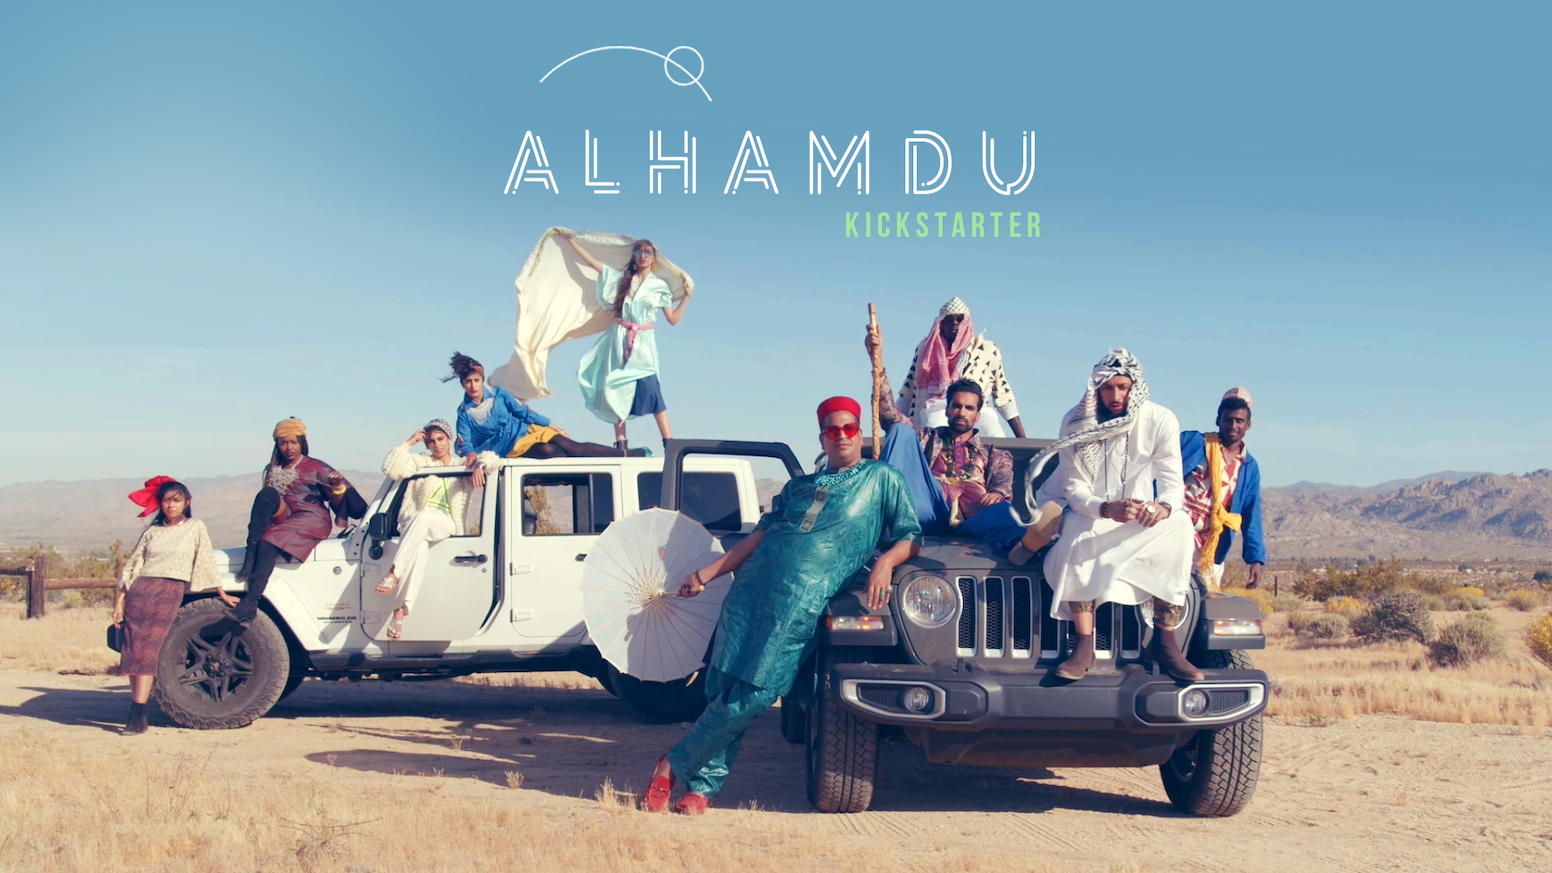 A musically-driven short film about Muslim Futurism. A colorful and joyous look into a future where Muslims exist unapologetically.